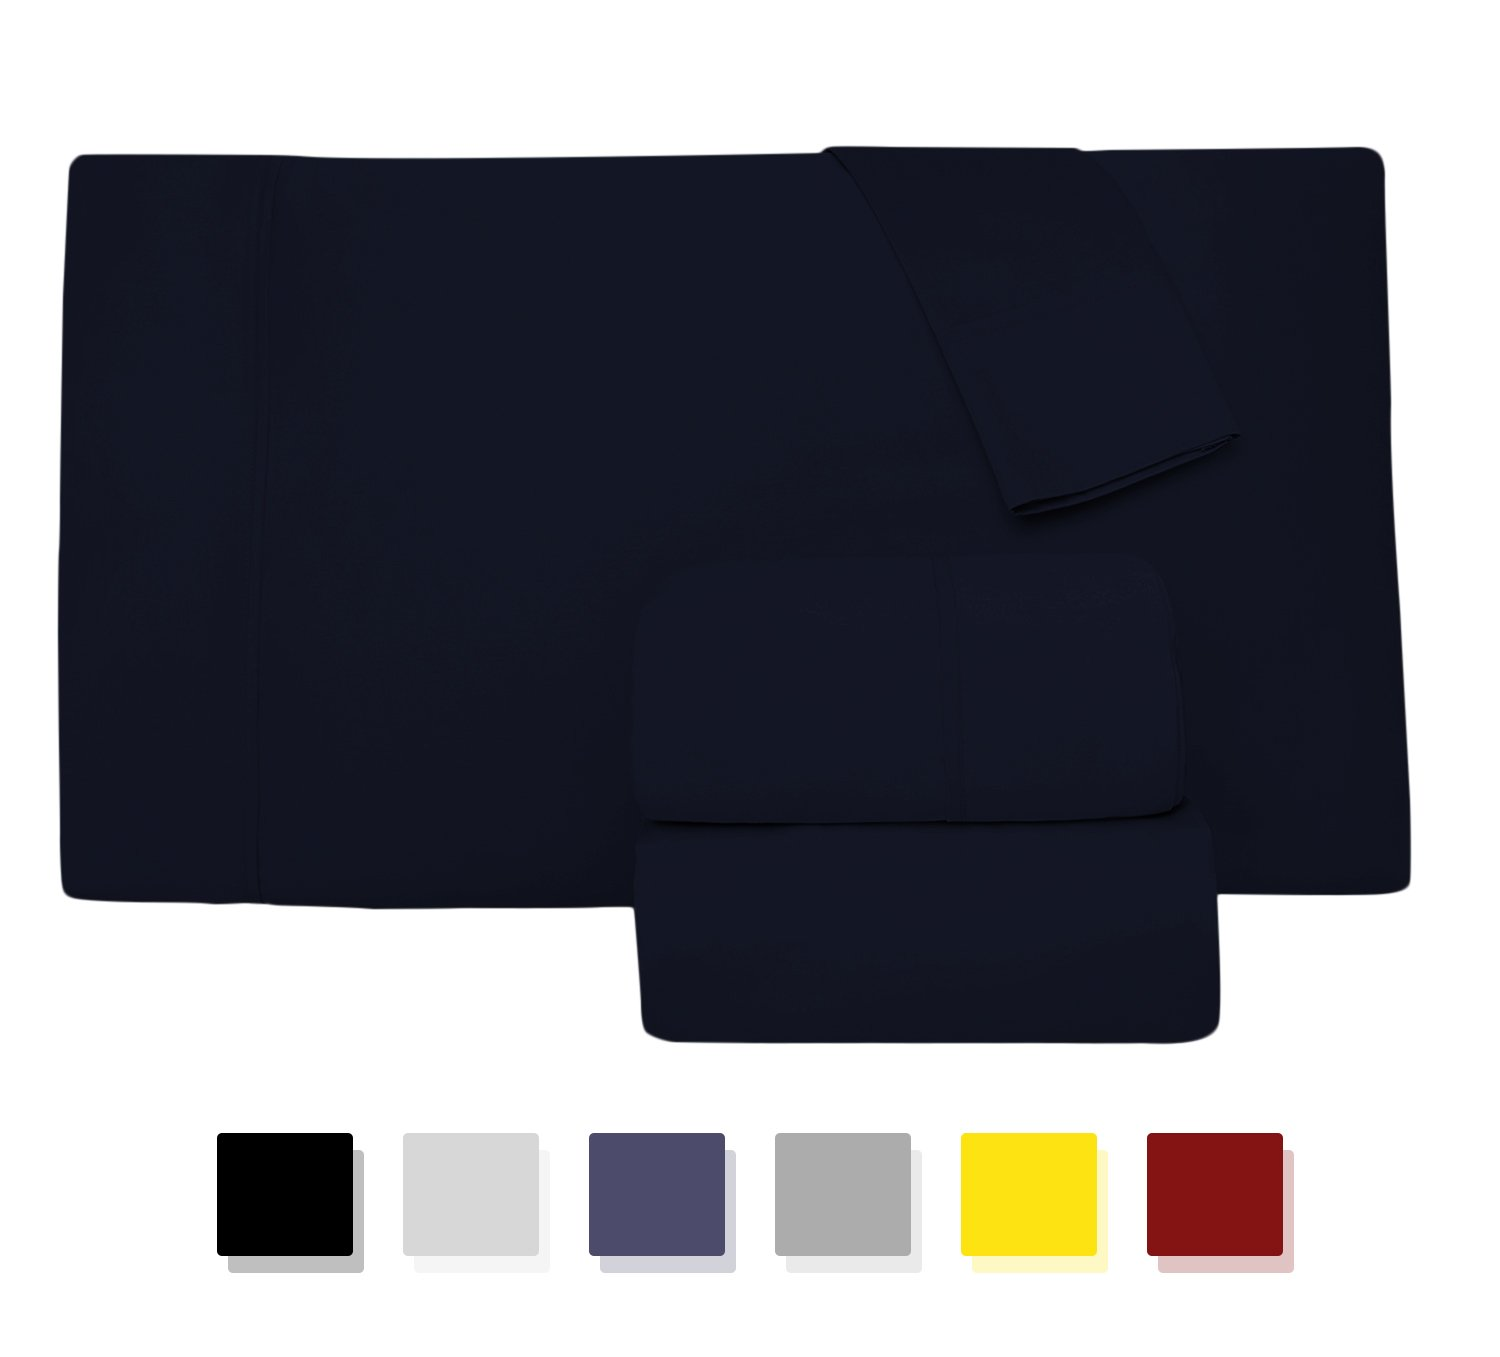 Comfy Sheets Luxury 100% Egyptian Cotton - Genuine 1000 Thread Count 4 Piece Sheet Set-Fits Mattress Up to 18'' Deep Pocket (King, Navy Blue)